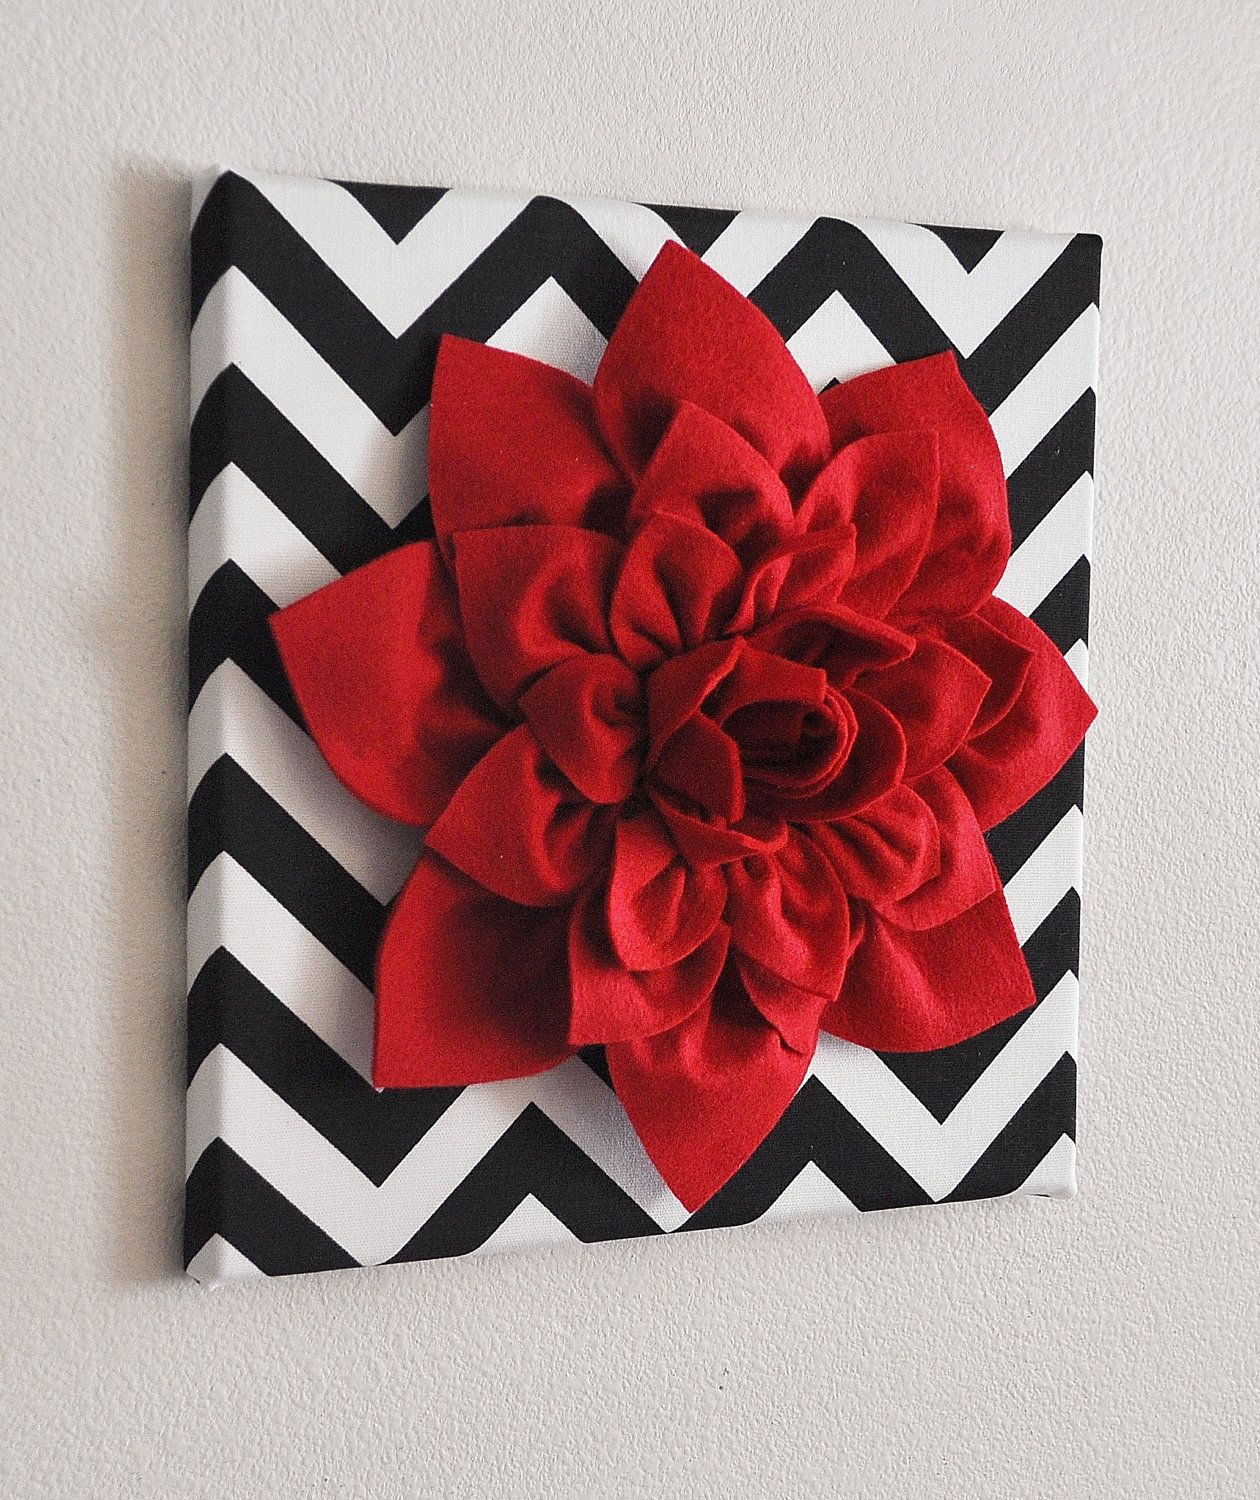 Red Wall Flower Dahlia On Black And White Chevron 12 X12 Canvas Art Baby Nursery Decor 34 00 Via Etsy